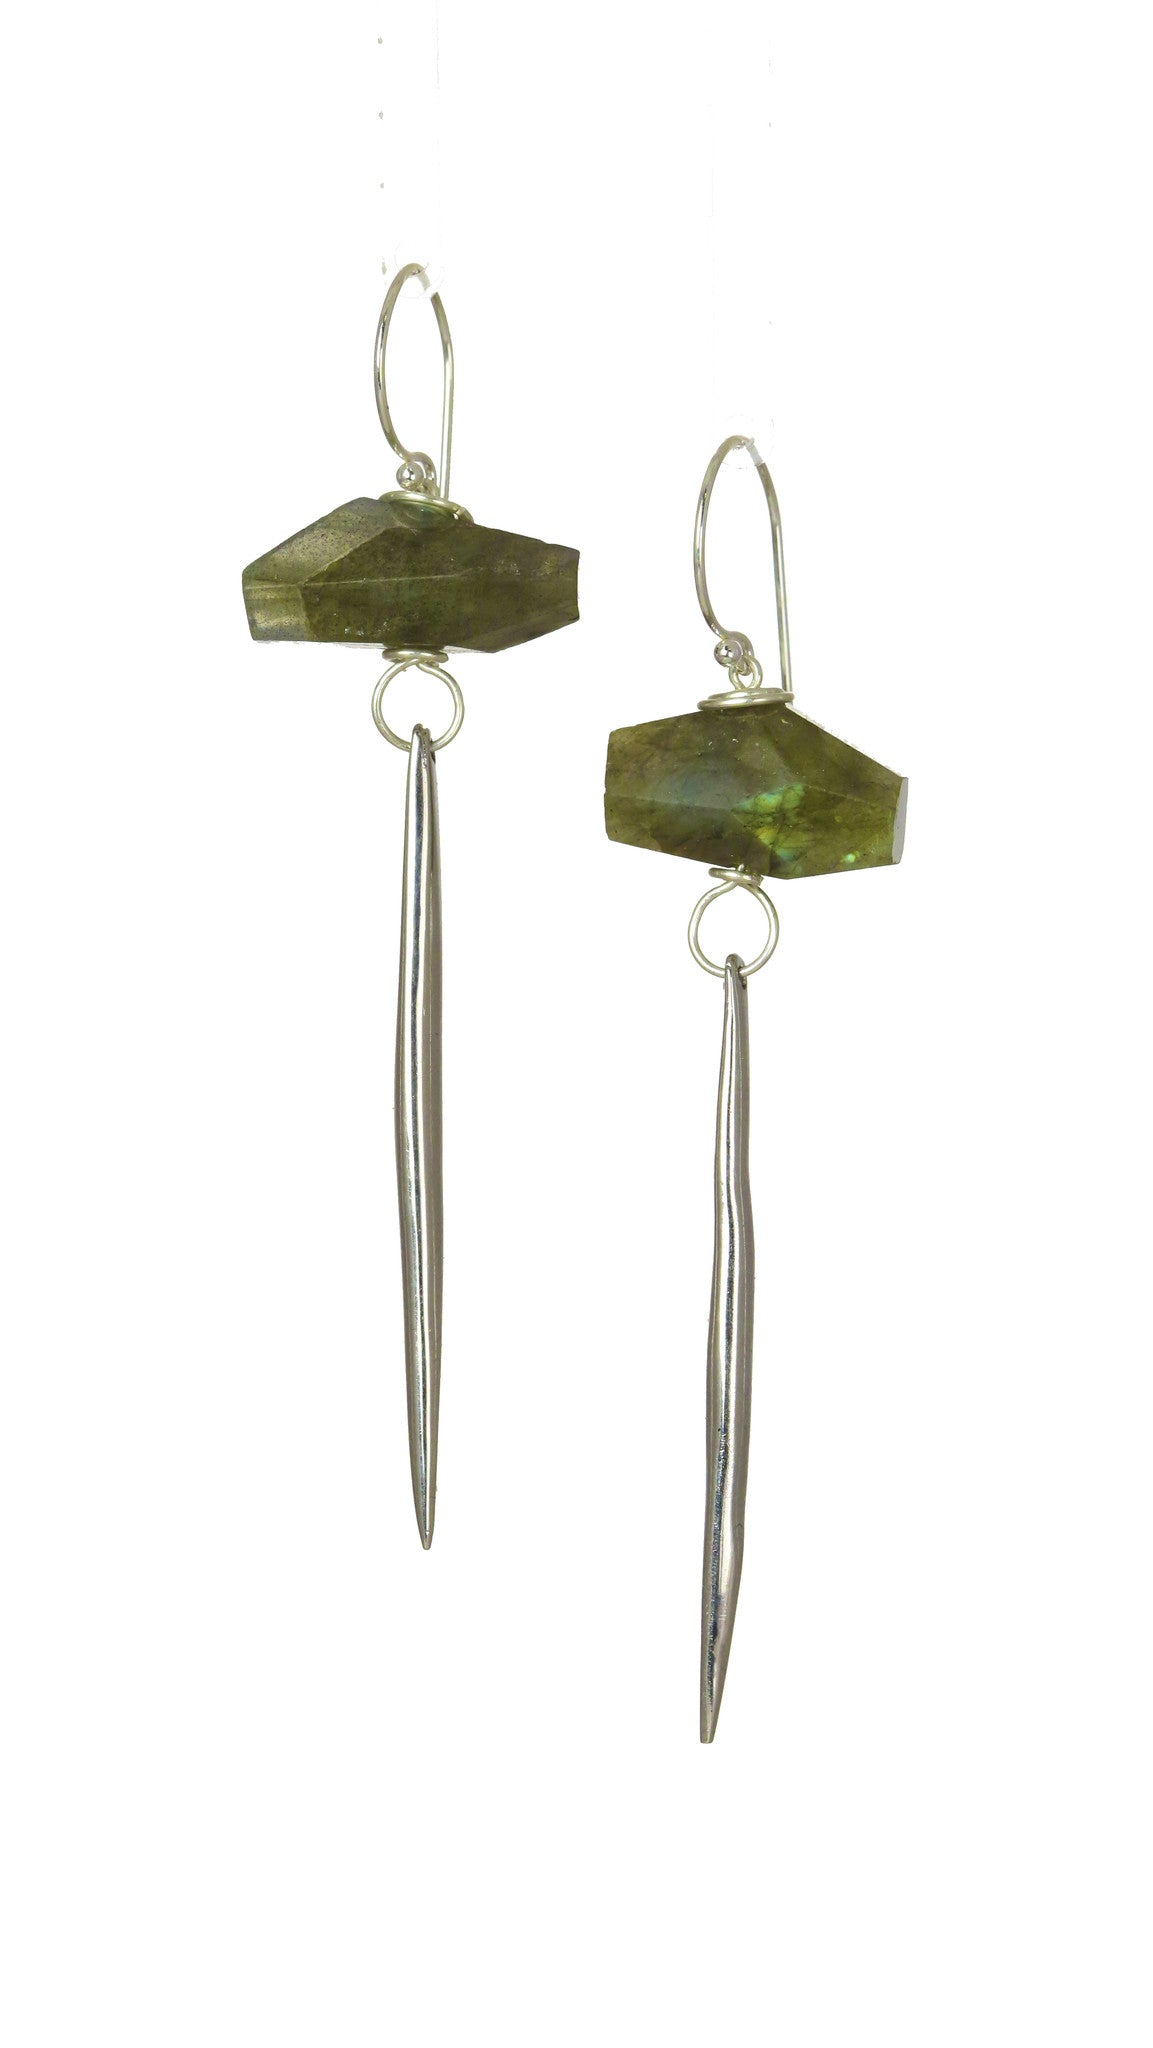 Labradorite Kinship Porcupine Quill Earrings in Sterling Silver